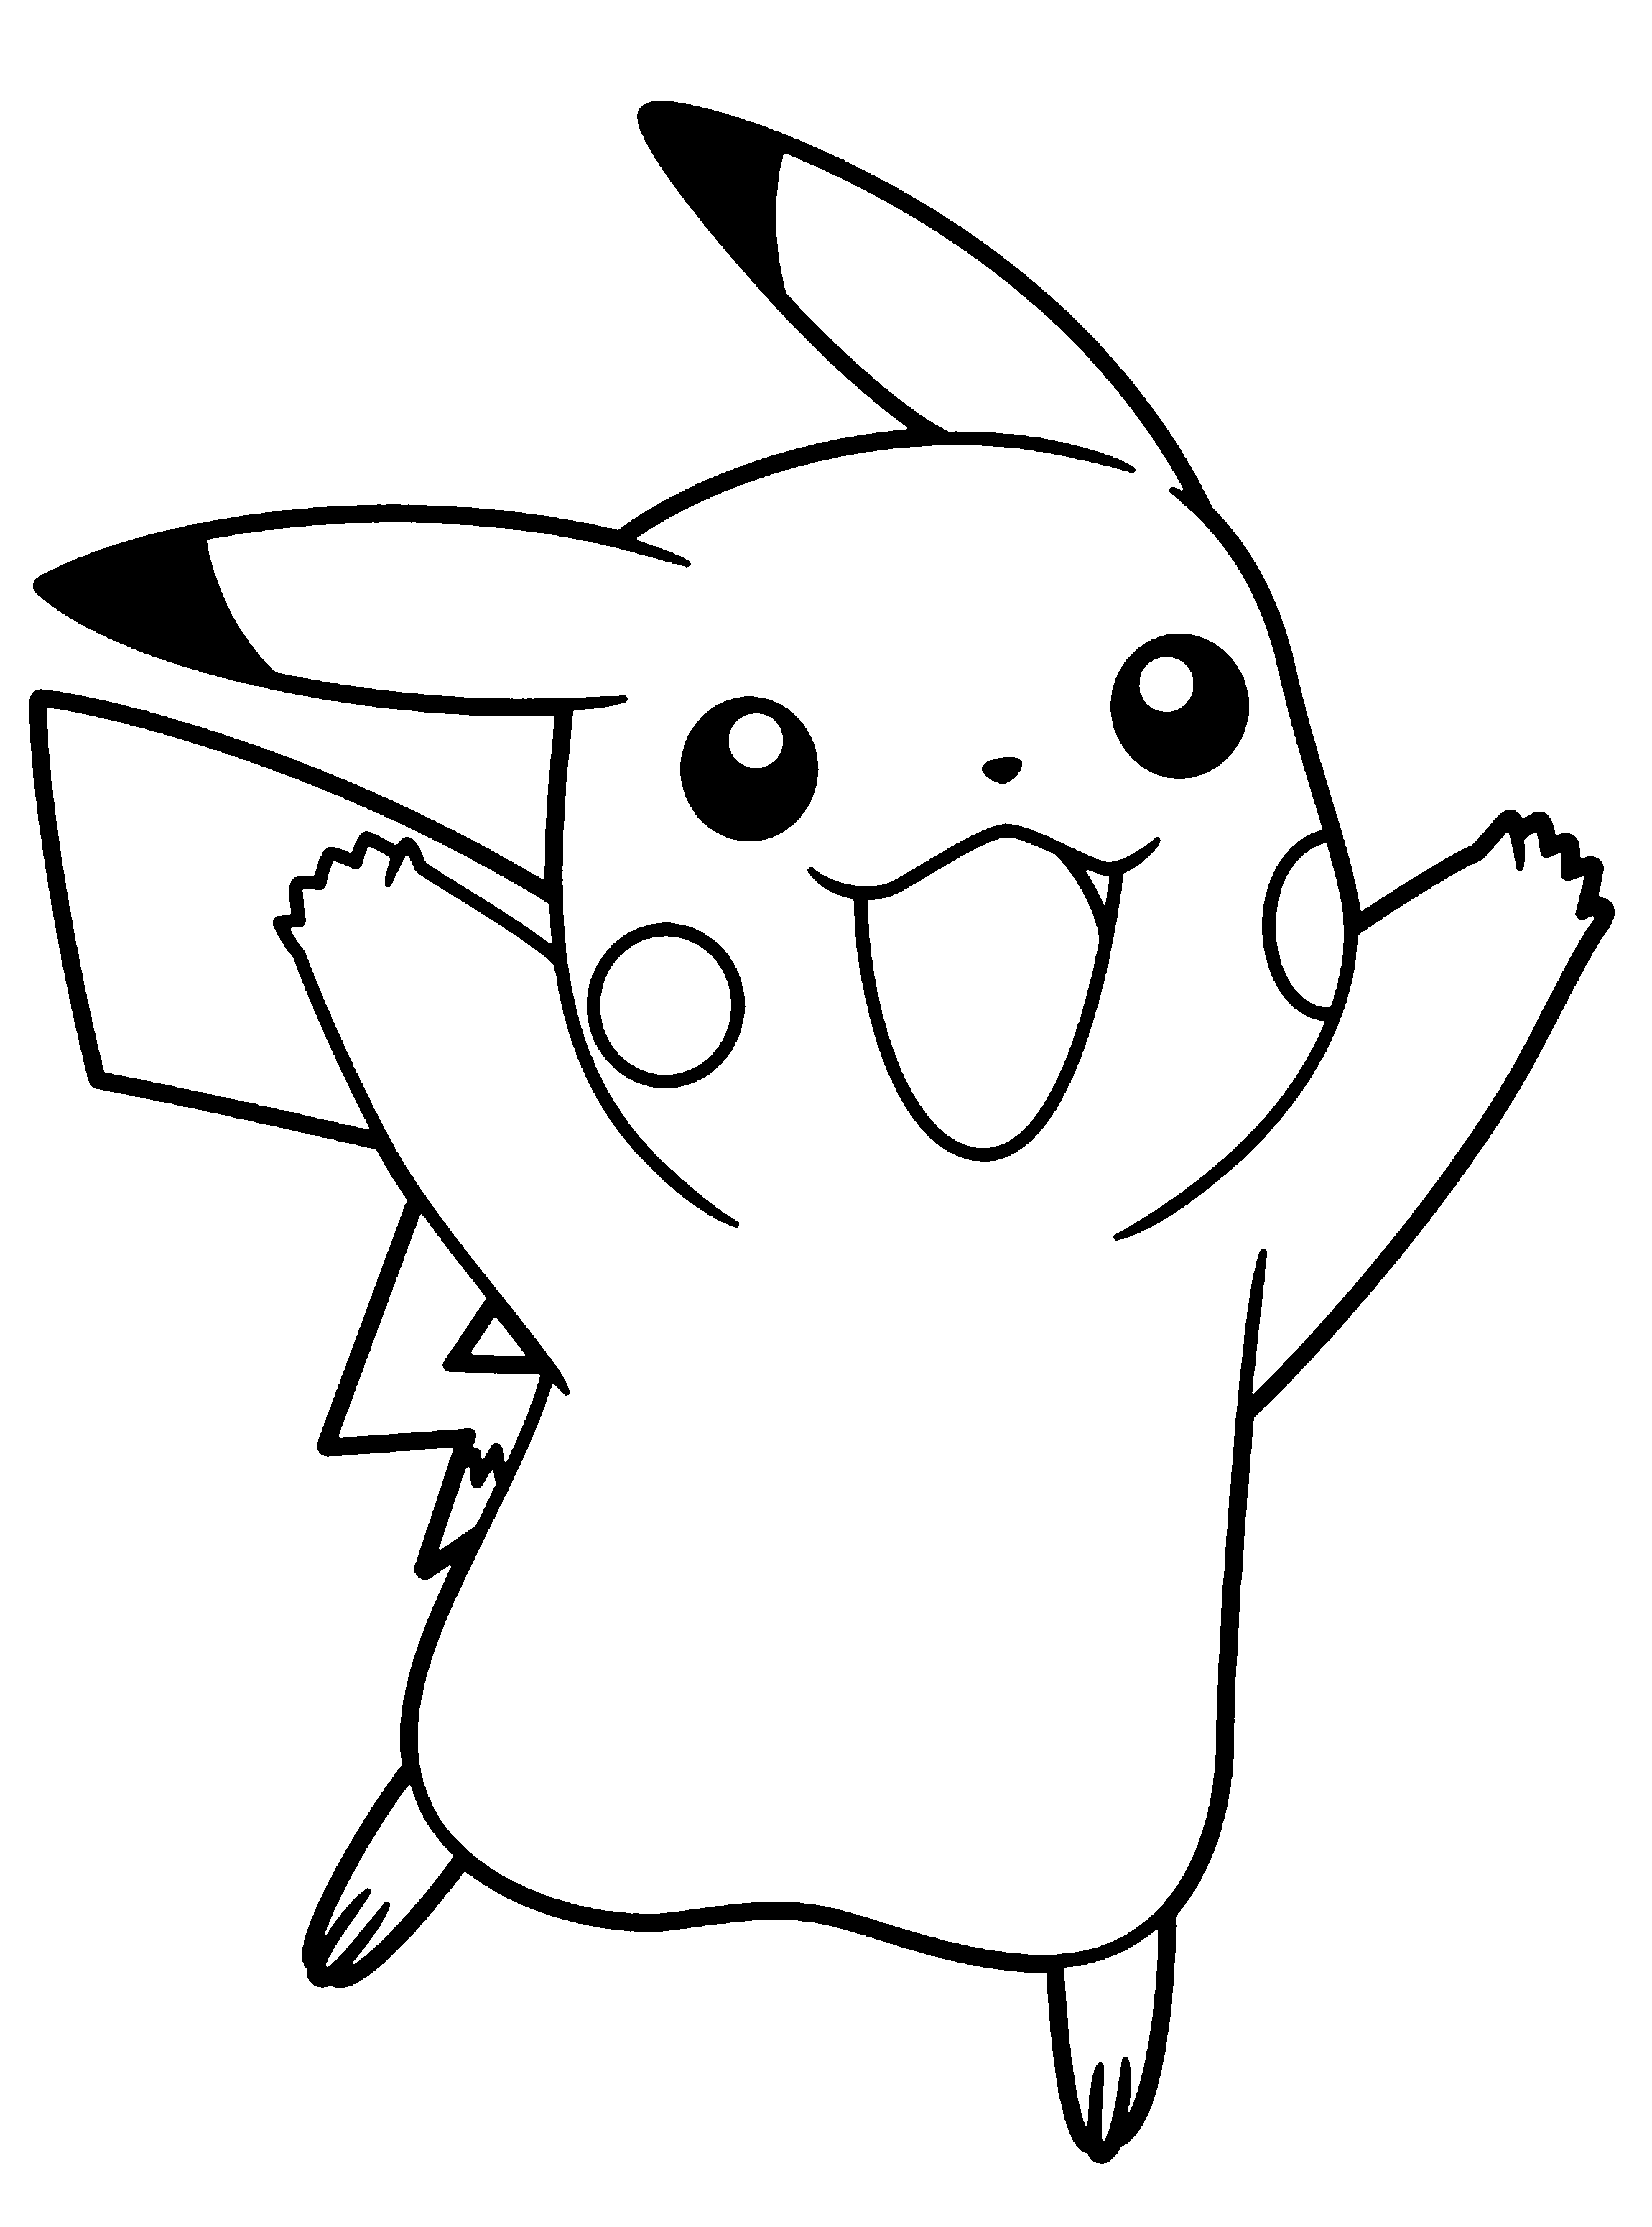 Coloring Book Online Coloring : Pikachu coloring pages to download and print for free